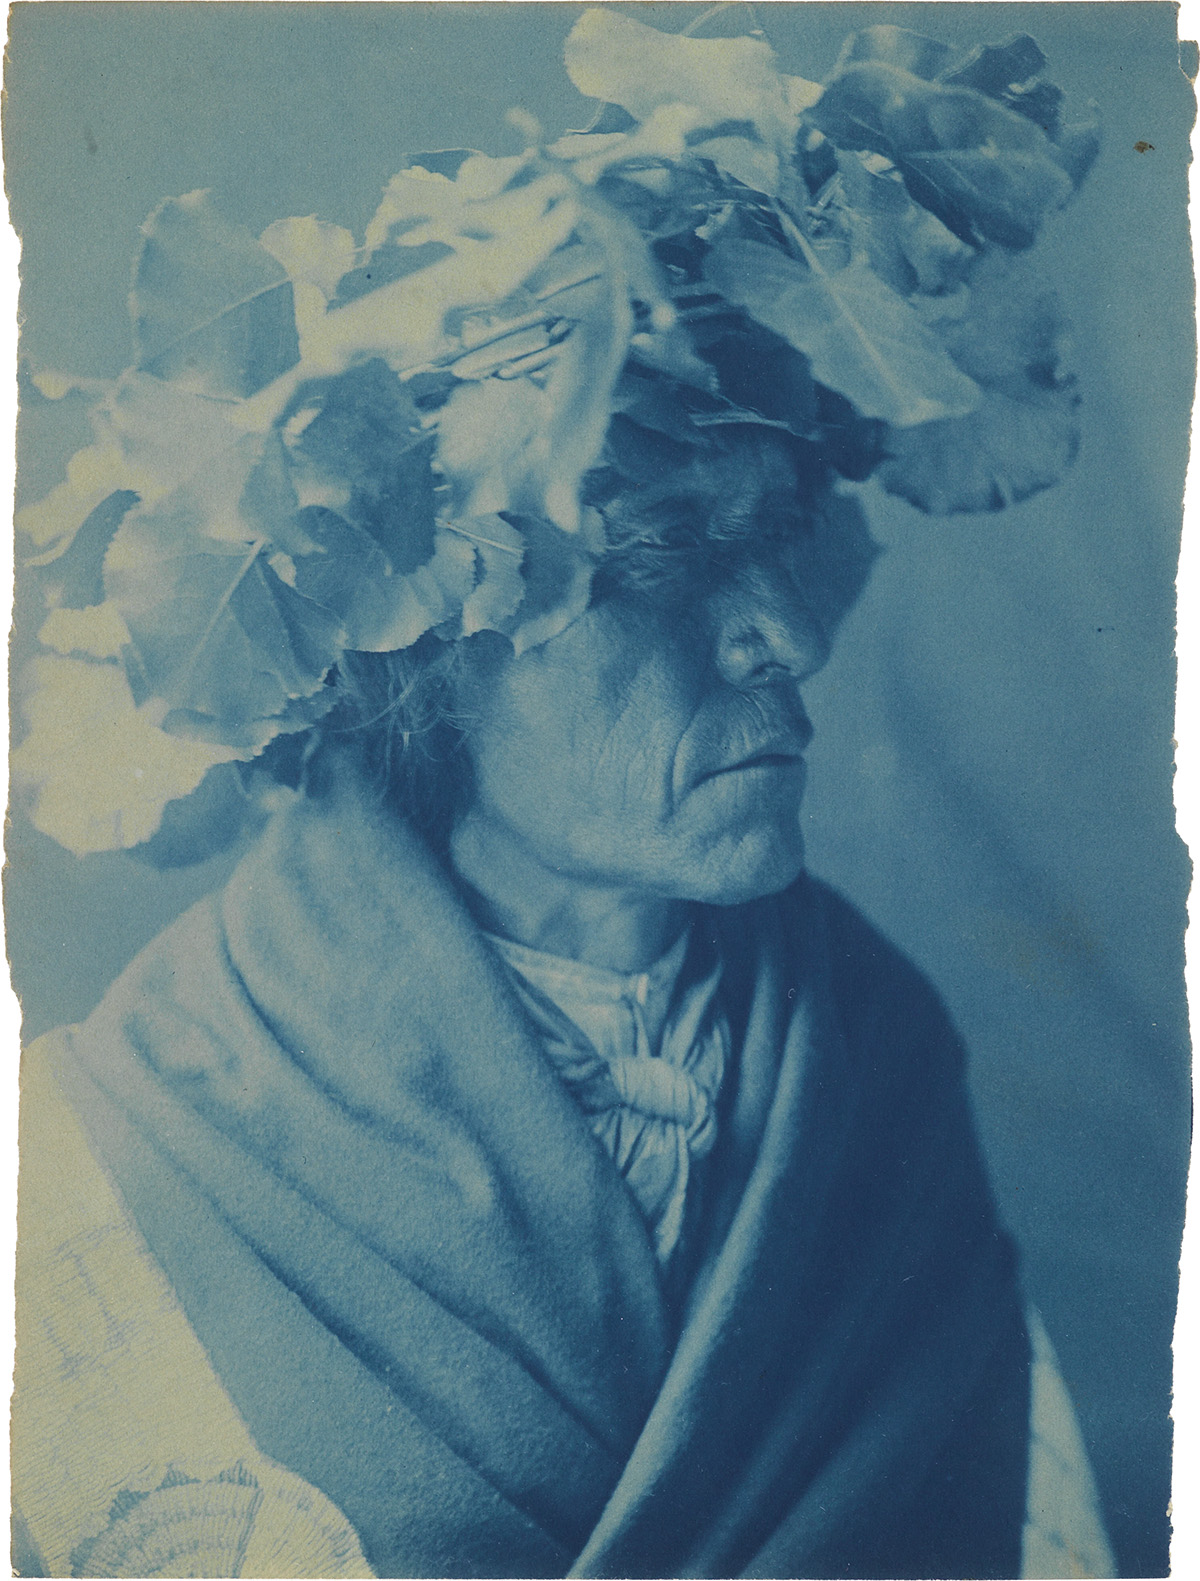 EDWARD S. CURTIS (1868-1952) A suite of 18 cyanotypes, with images from the Kwakiutl, Cheyenne, Cowichan, and Flathead, including portr